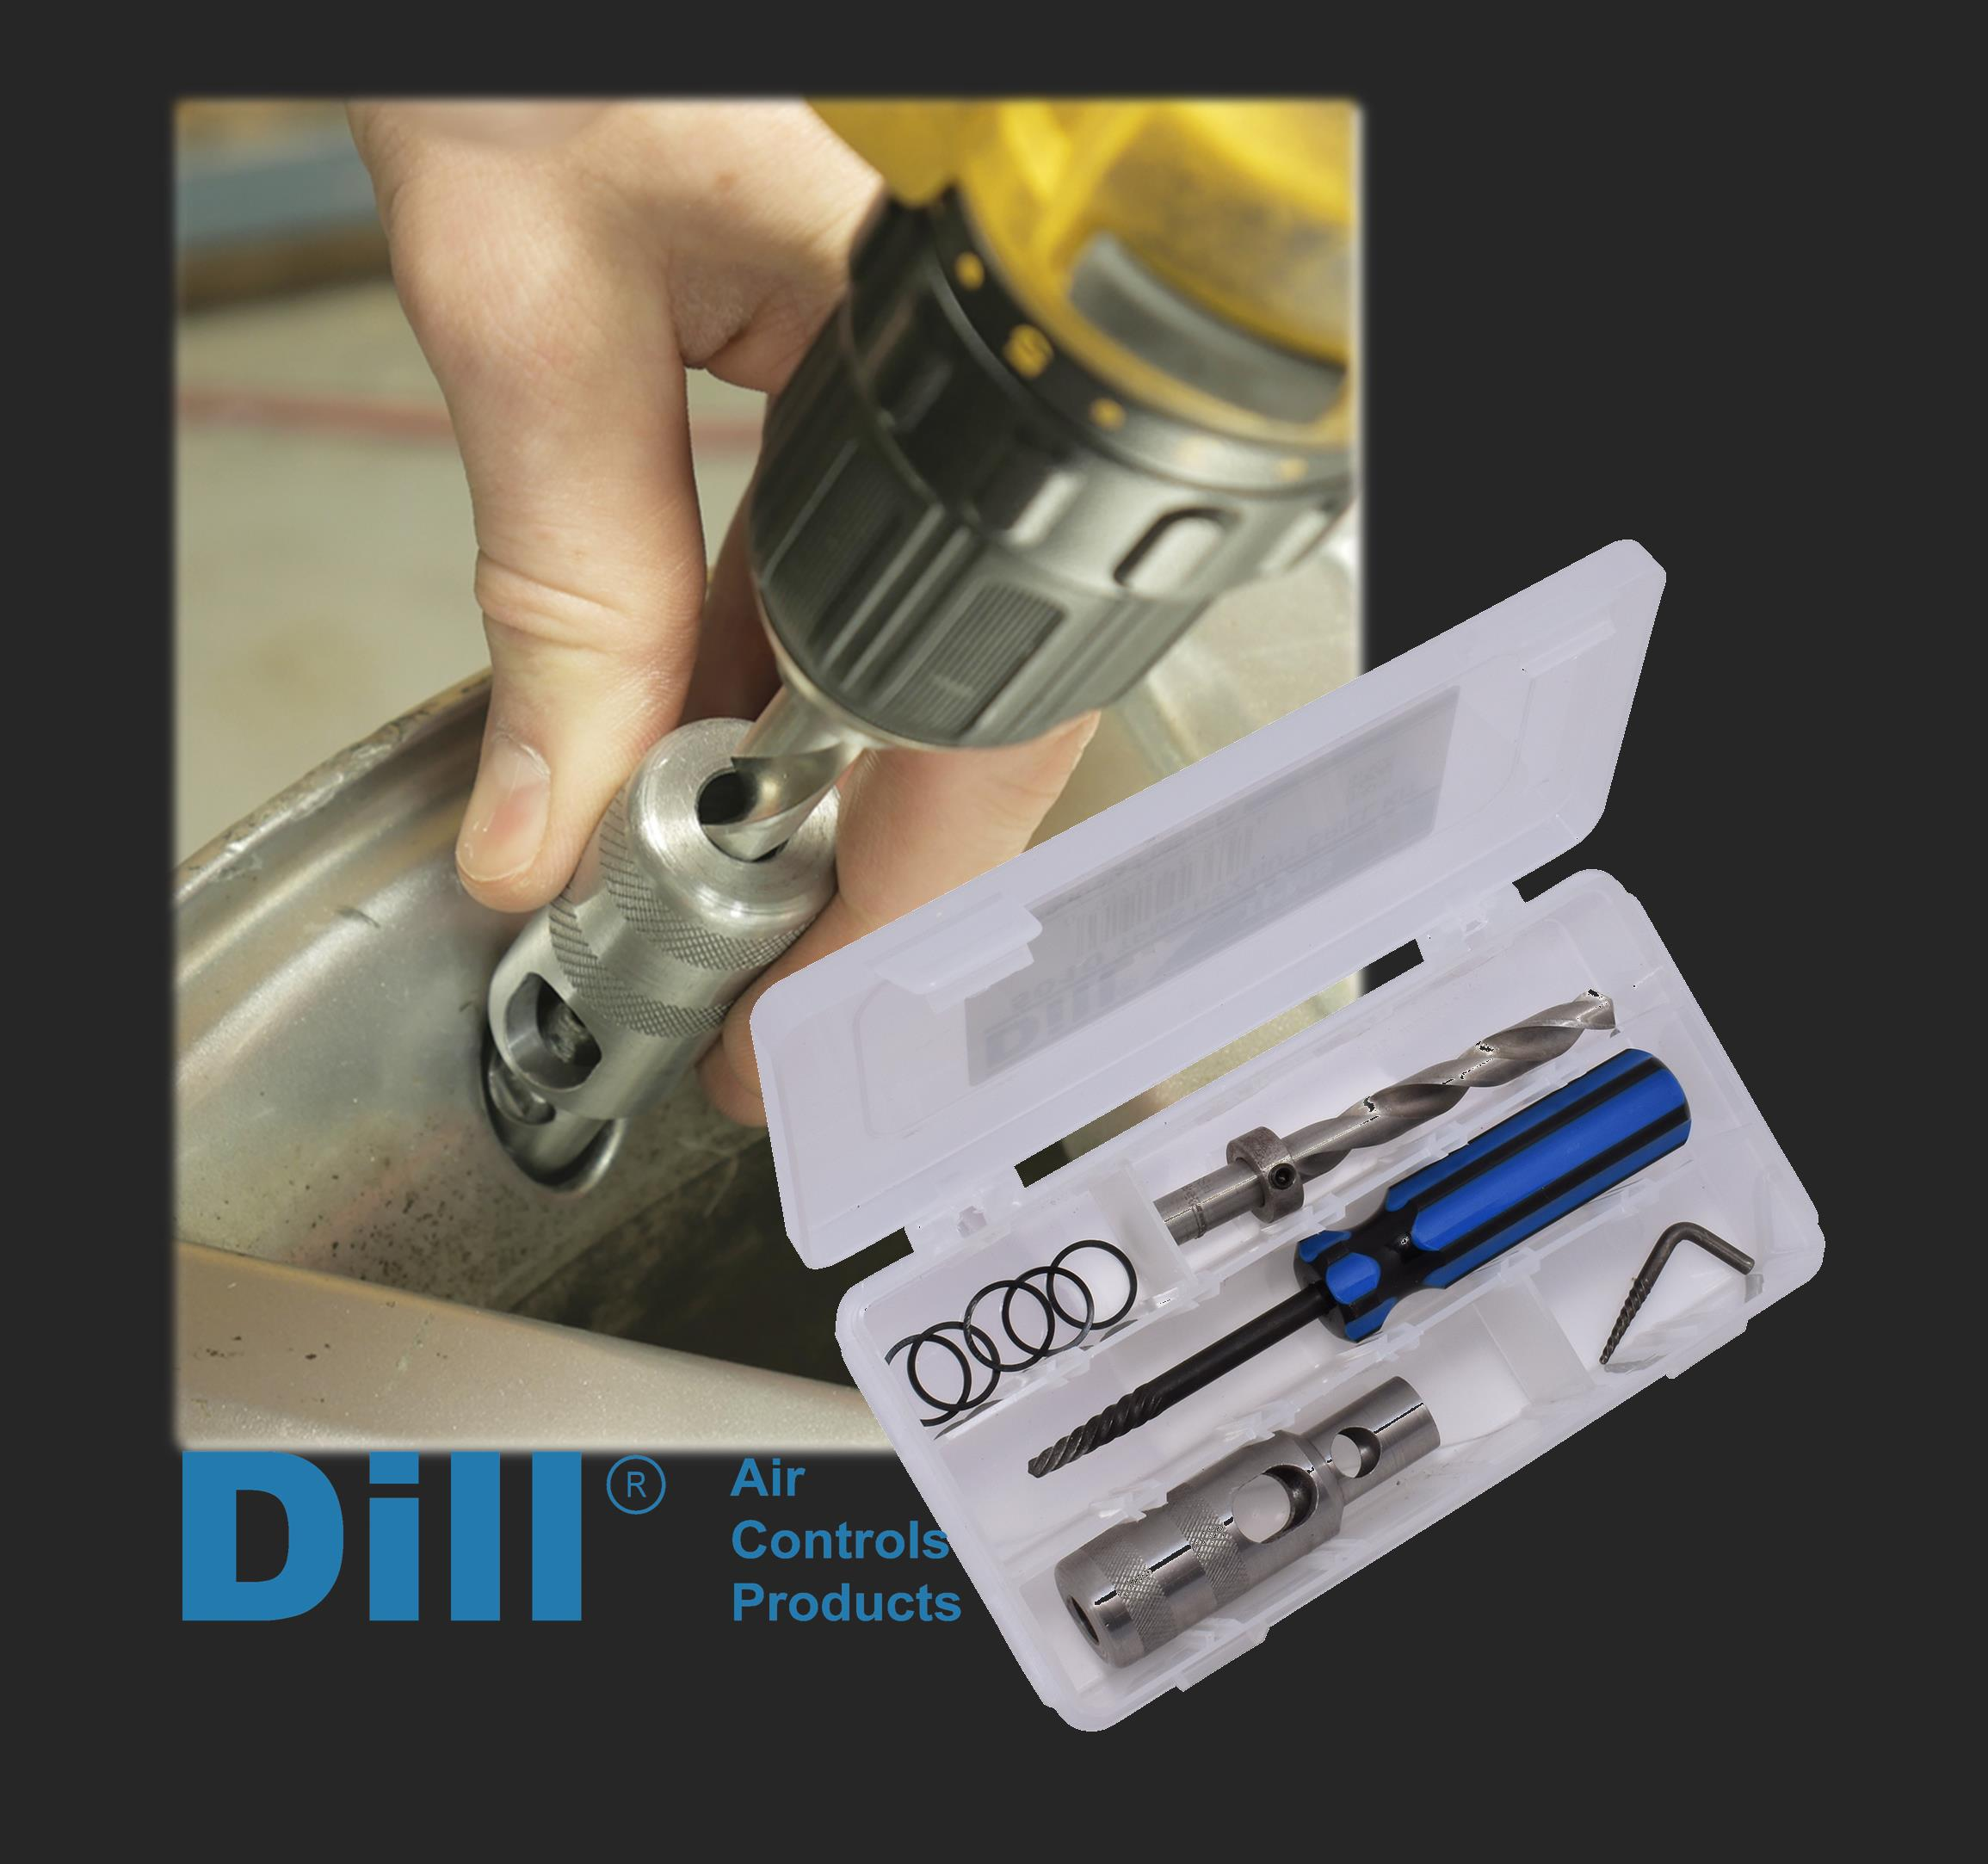 Dill Offers TPMS Hex Nut Removal Kit